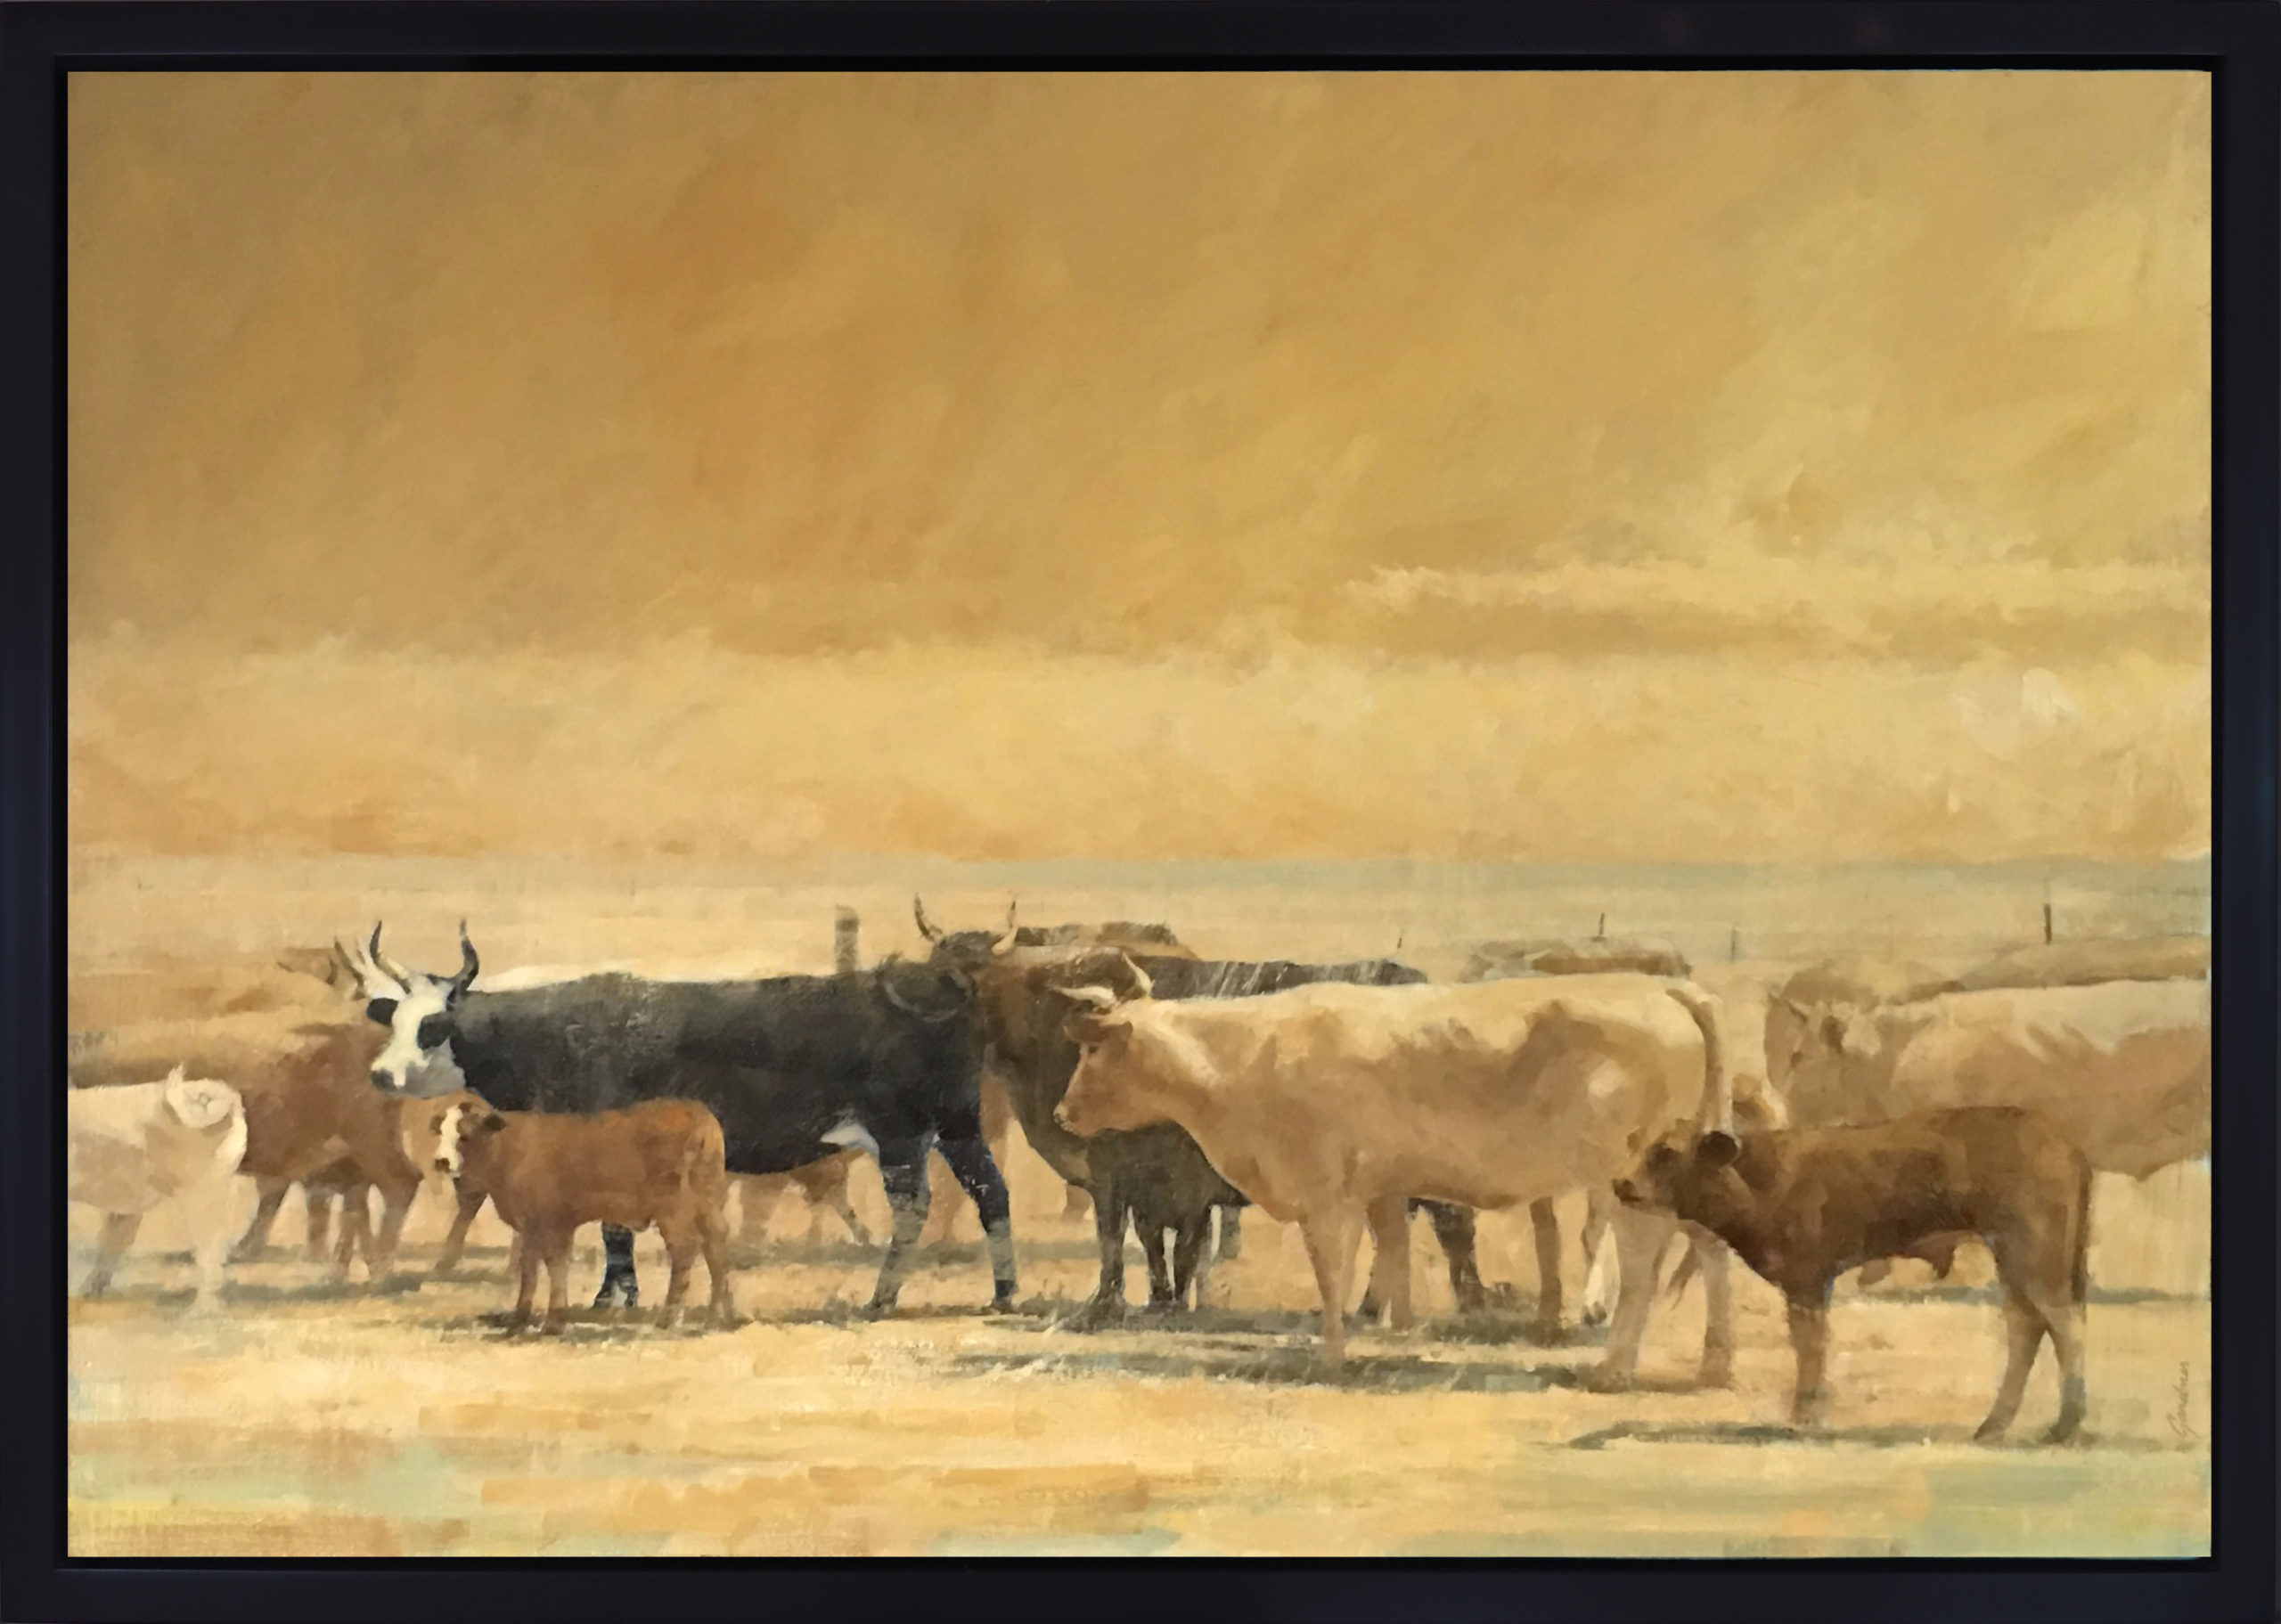 Terry  Gardner - The Dusty Herd